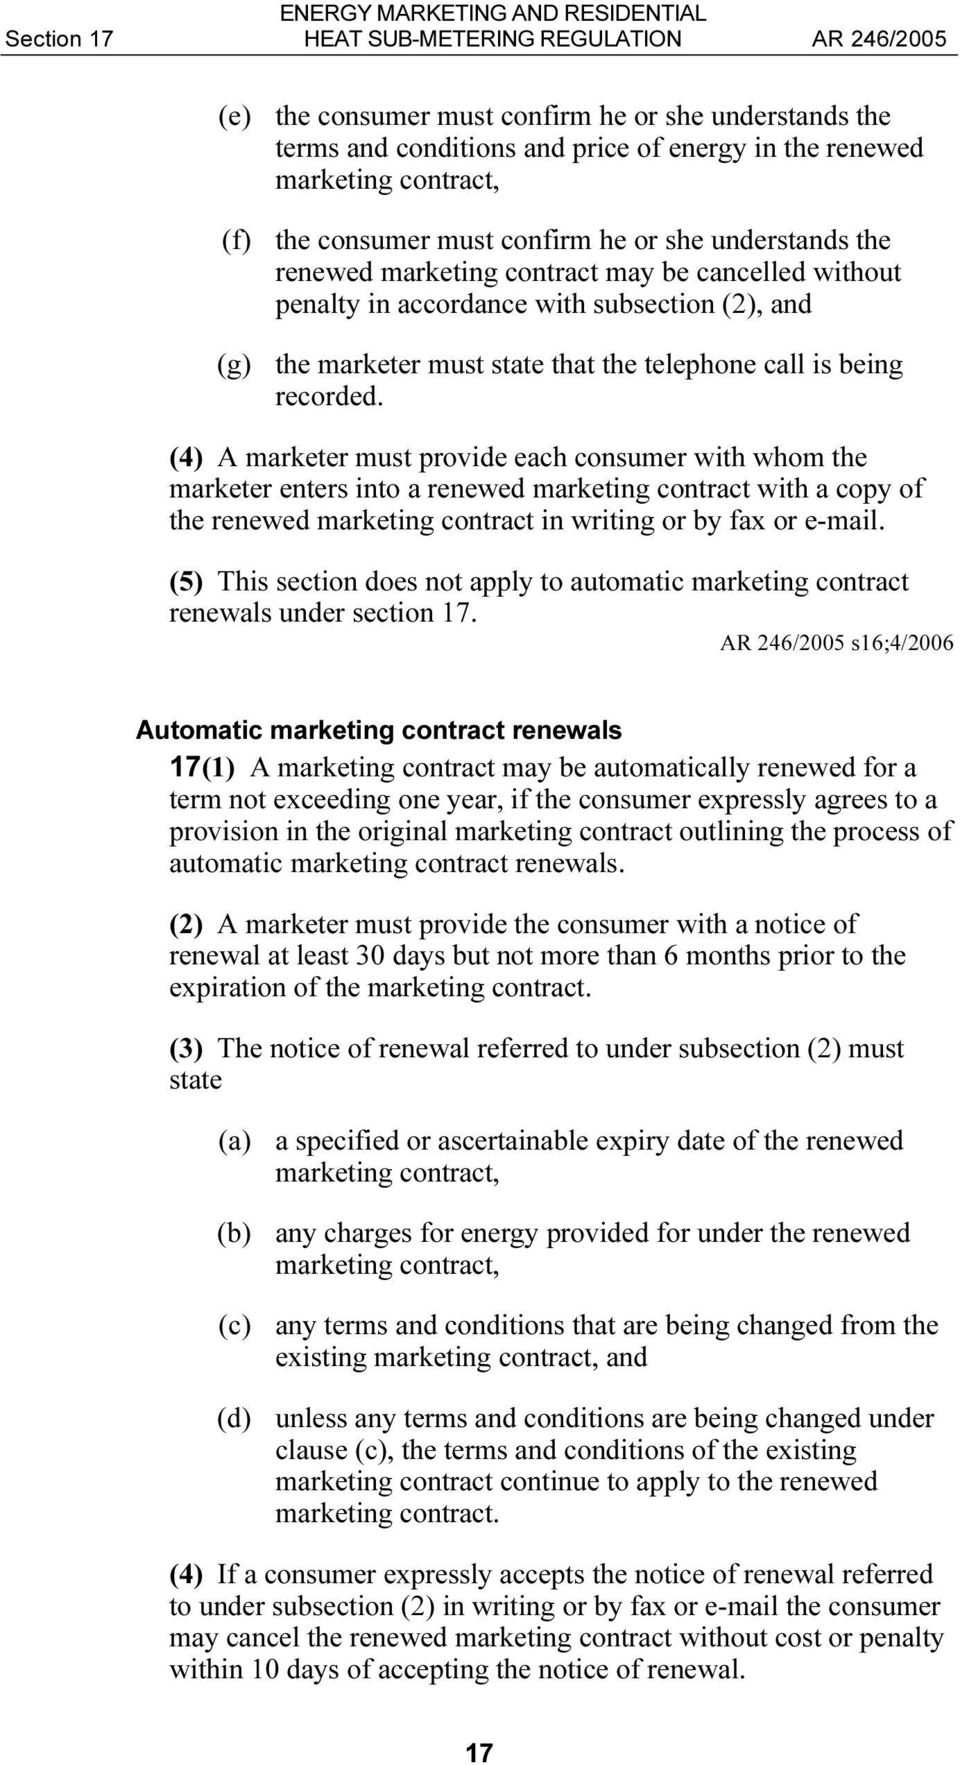 recorded. (4) A marketer must provide each consumer with whom the marketer enters into a renewed marketing contract with a copy of the renewed marketing contract in writing or by fax or e-mail.